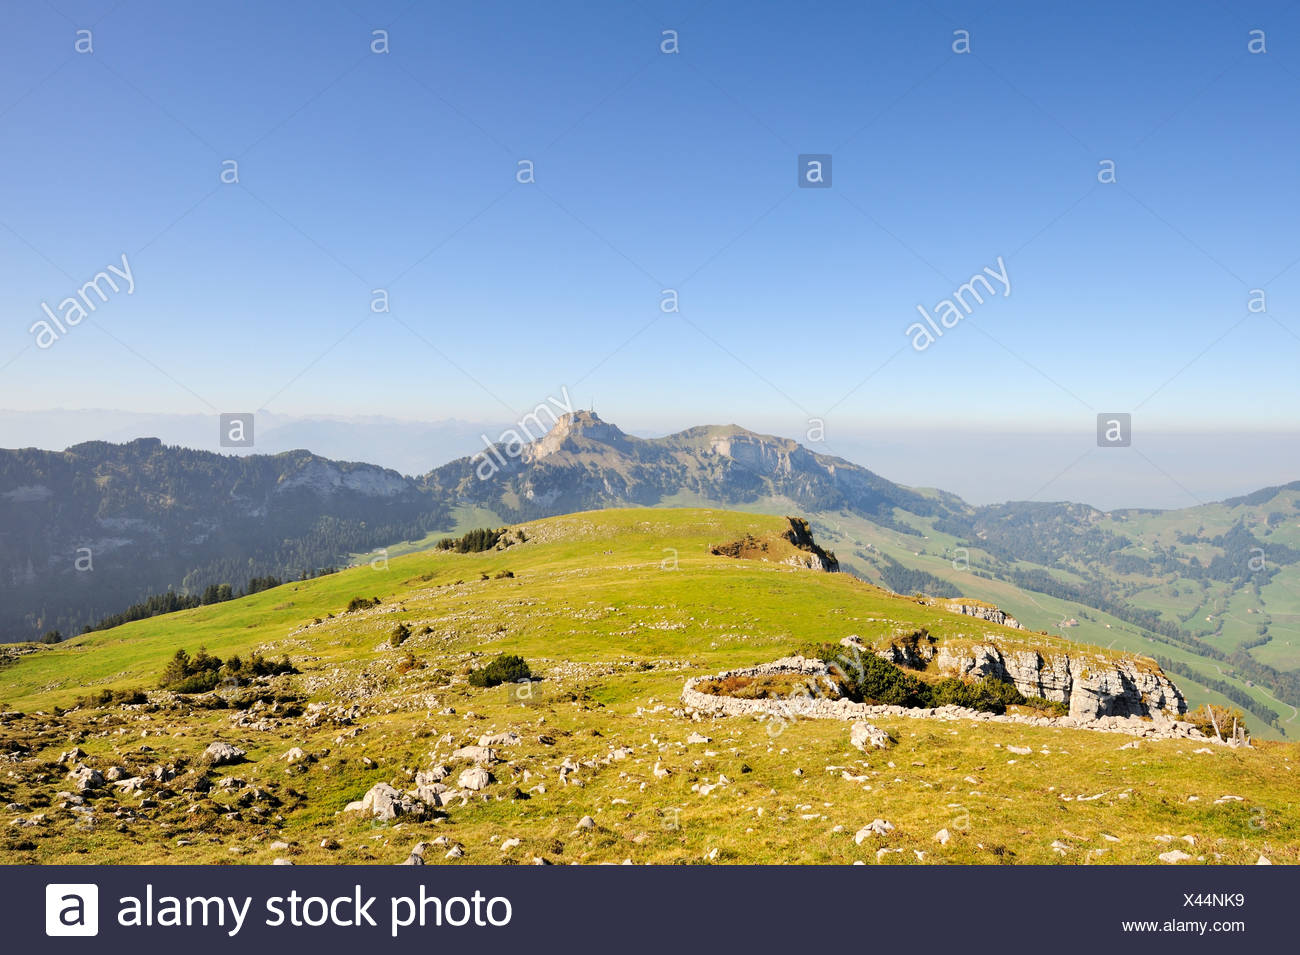 Pasture on the escarpment on the high plateau Alp Sigel, 1730 m, in the Appenzell Alps with a view towards Hohen Kasten Mountain - Stock Image